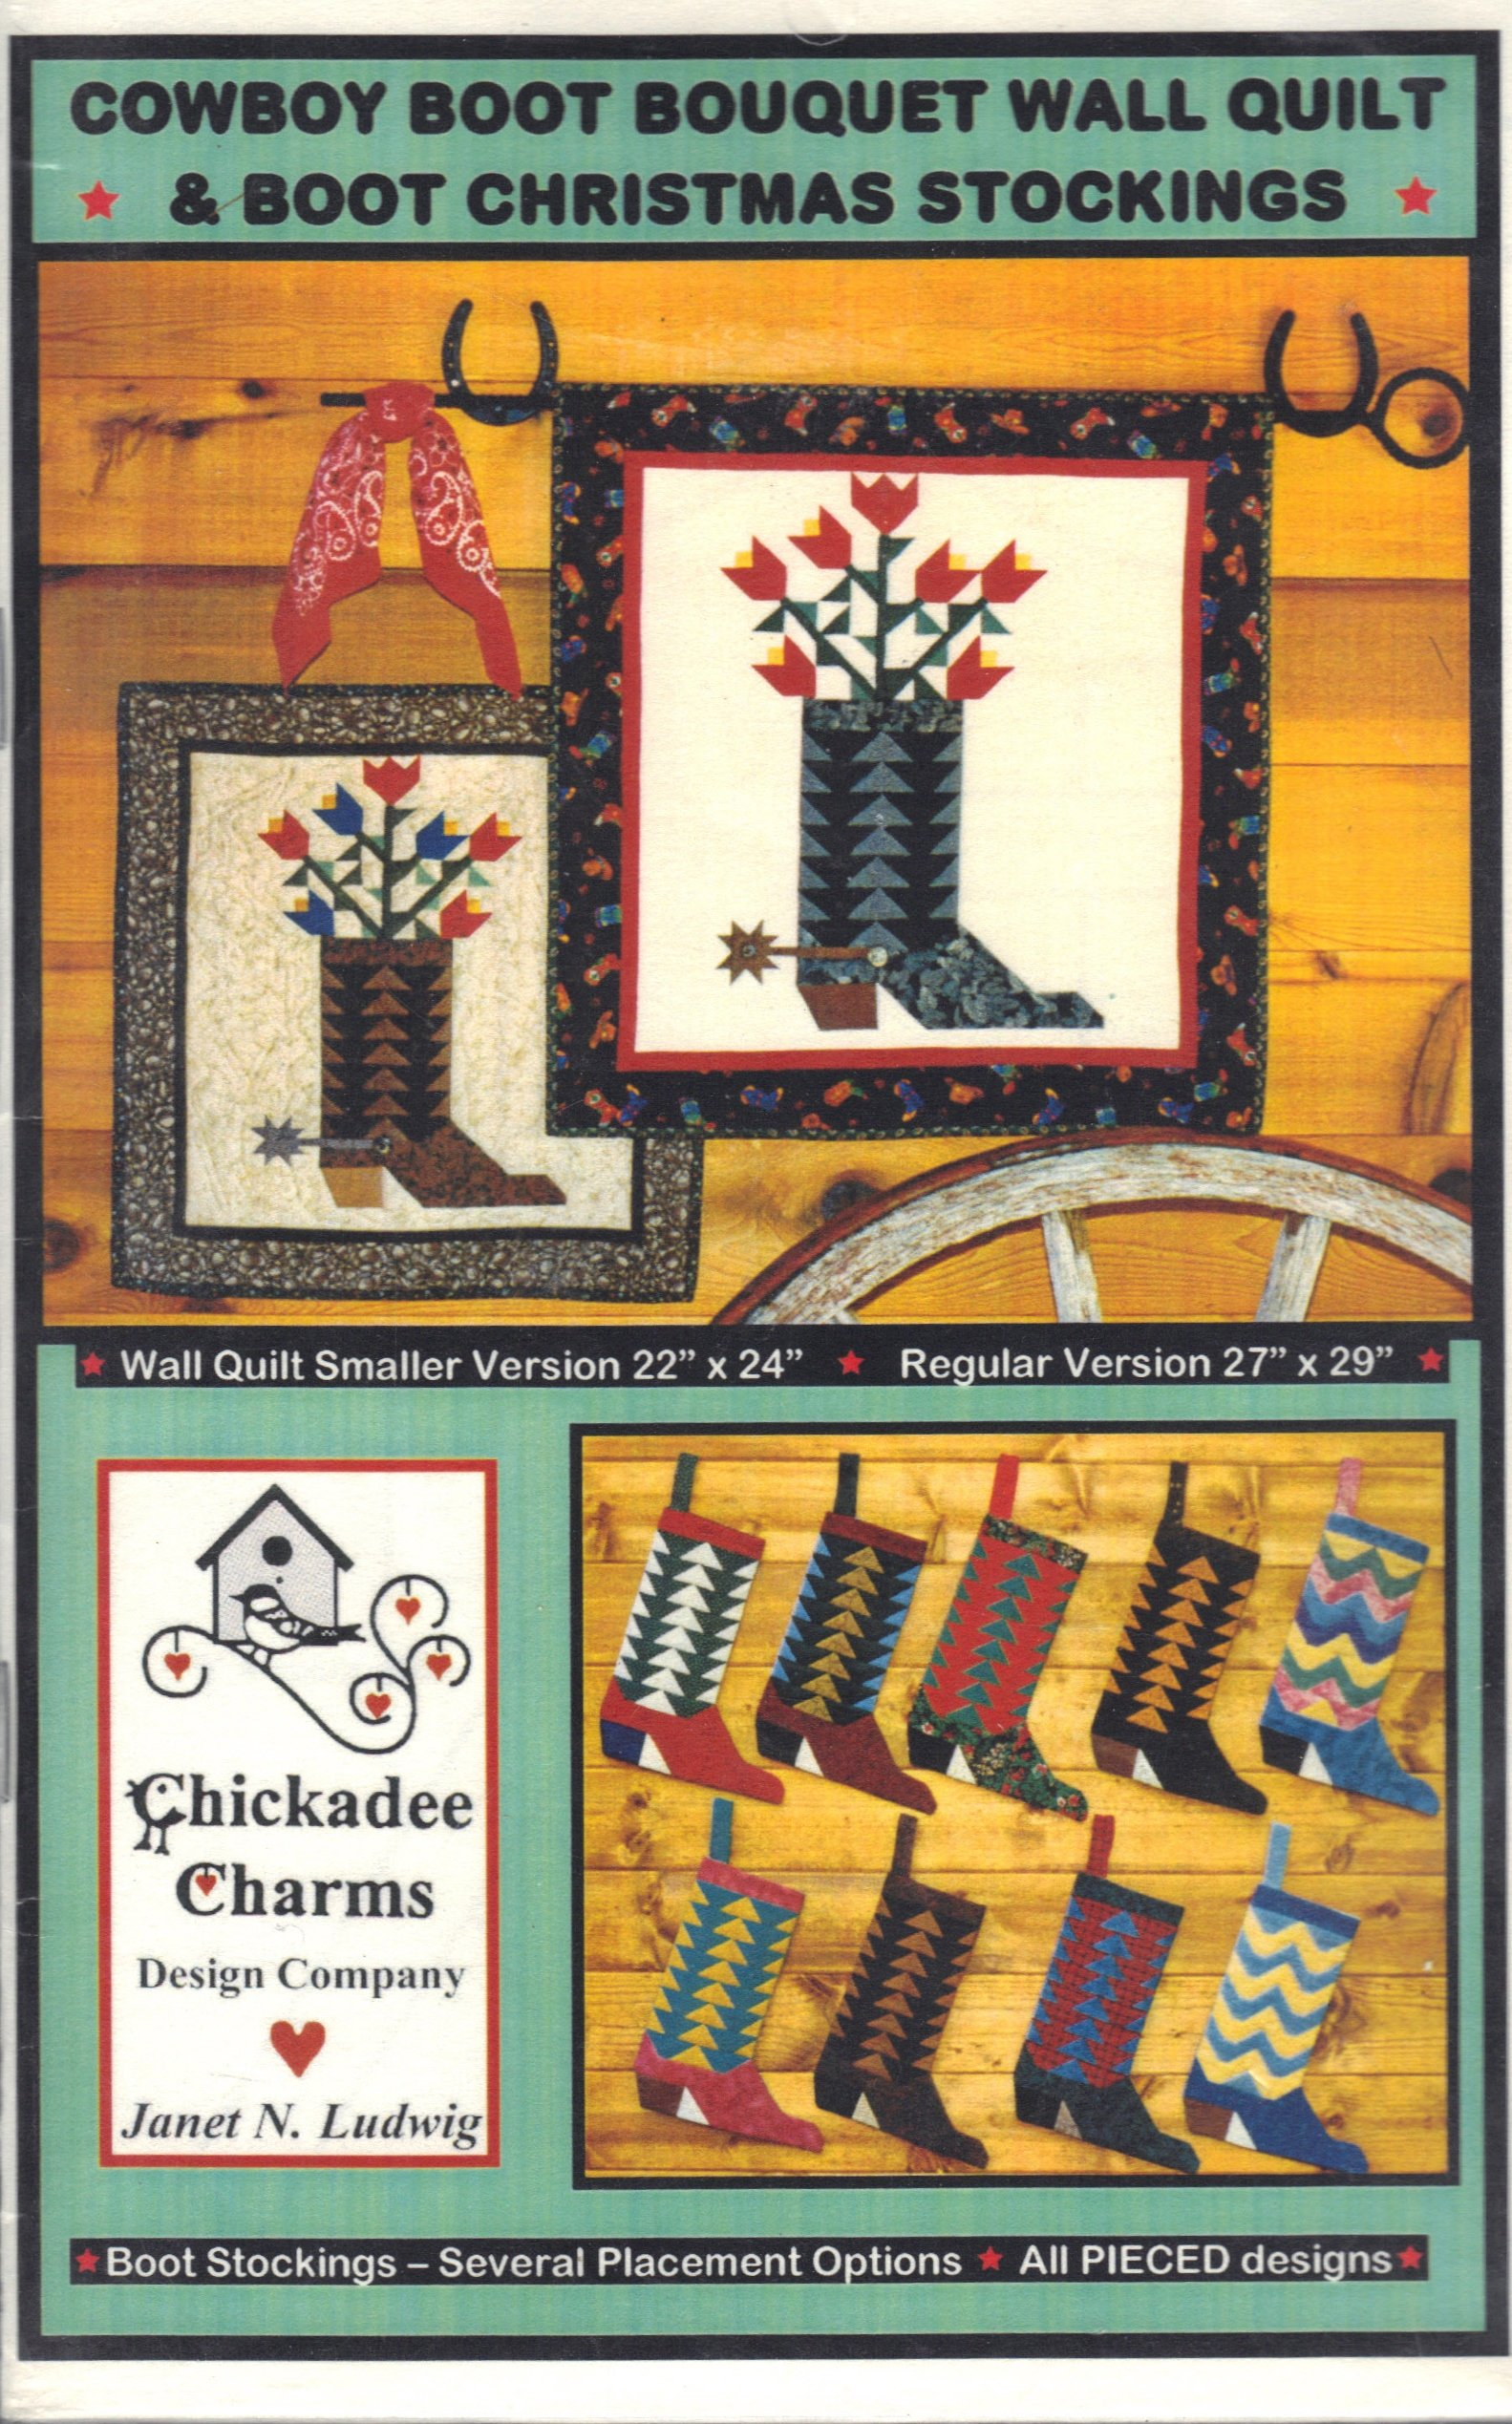 Cowboy Boot Bouquet Wall Quilt Boot Christmas Stockings